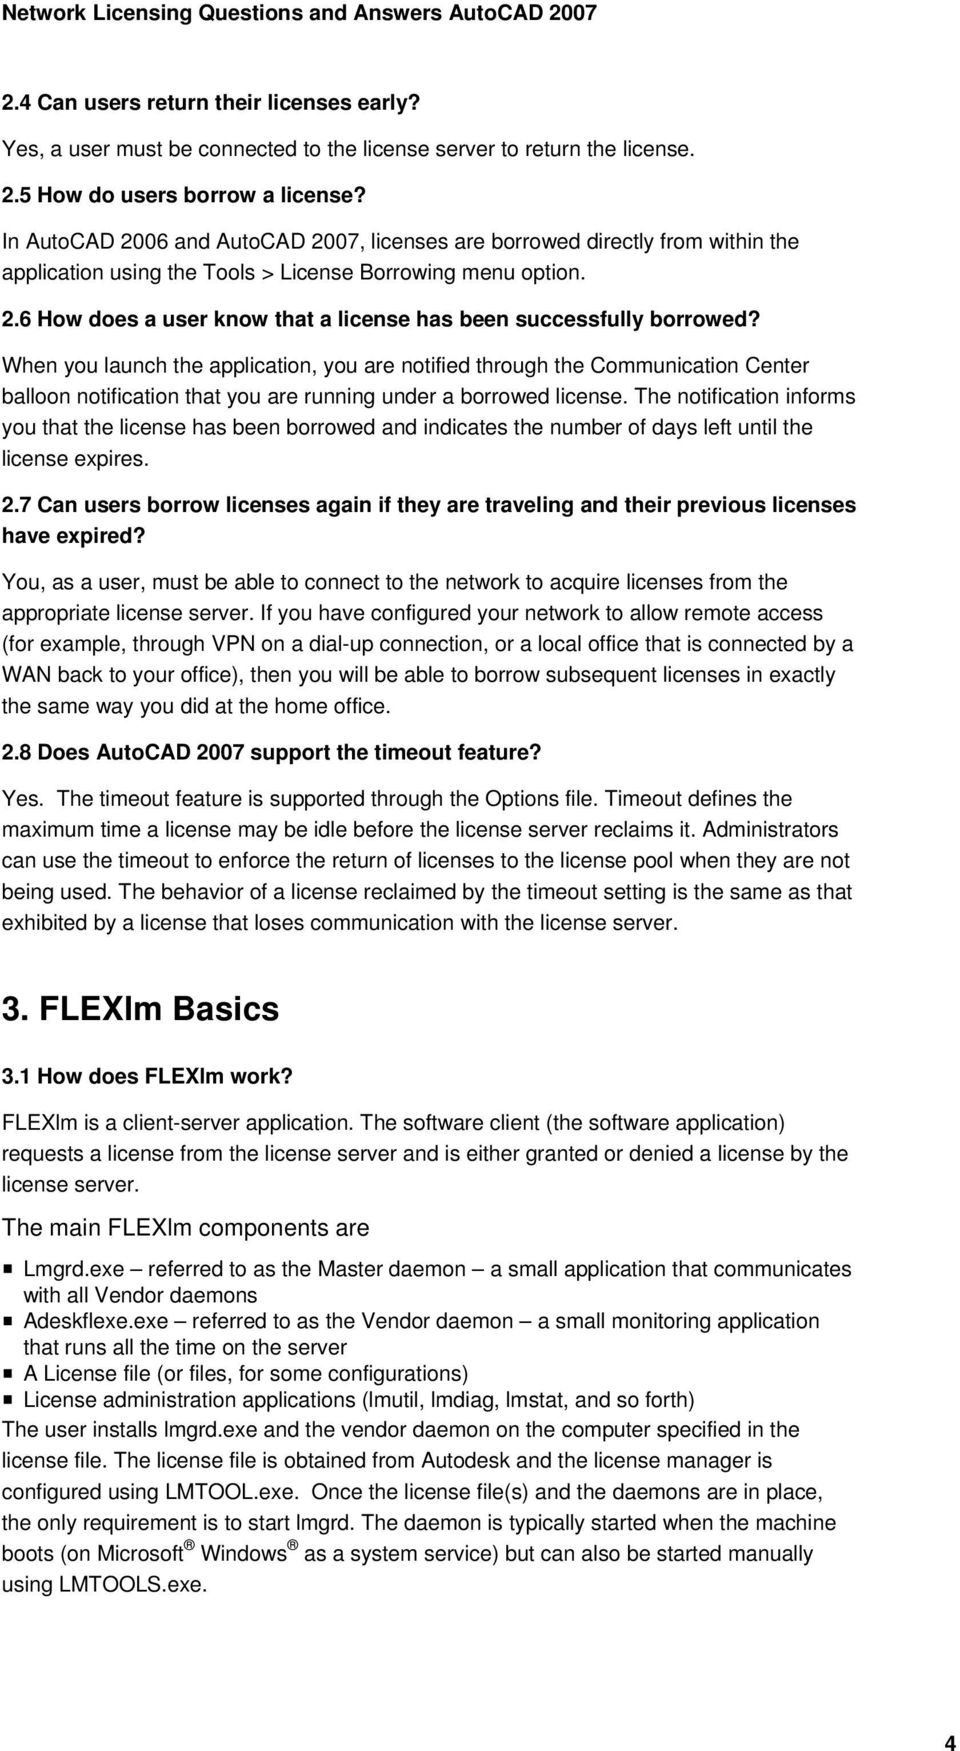 Network Licensing Questions and Answers - PDF